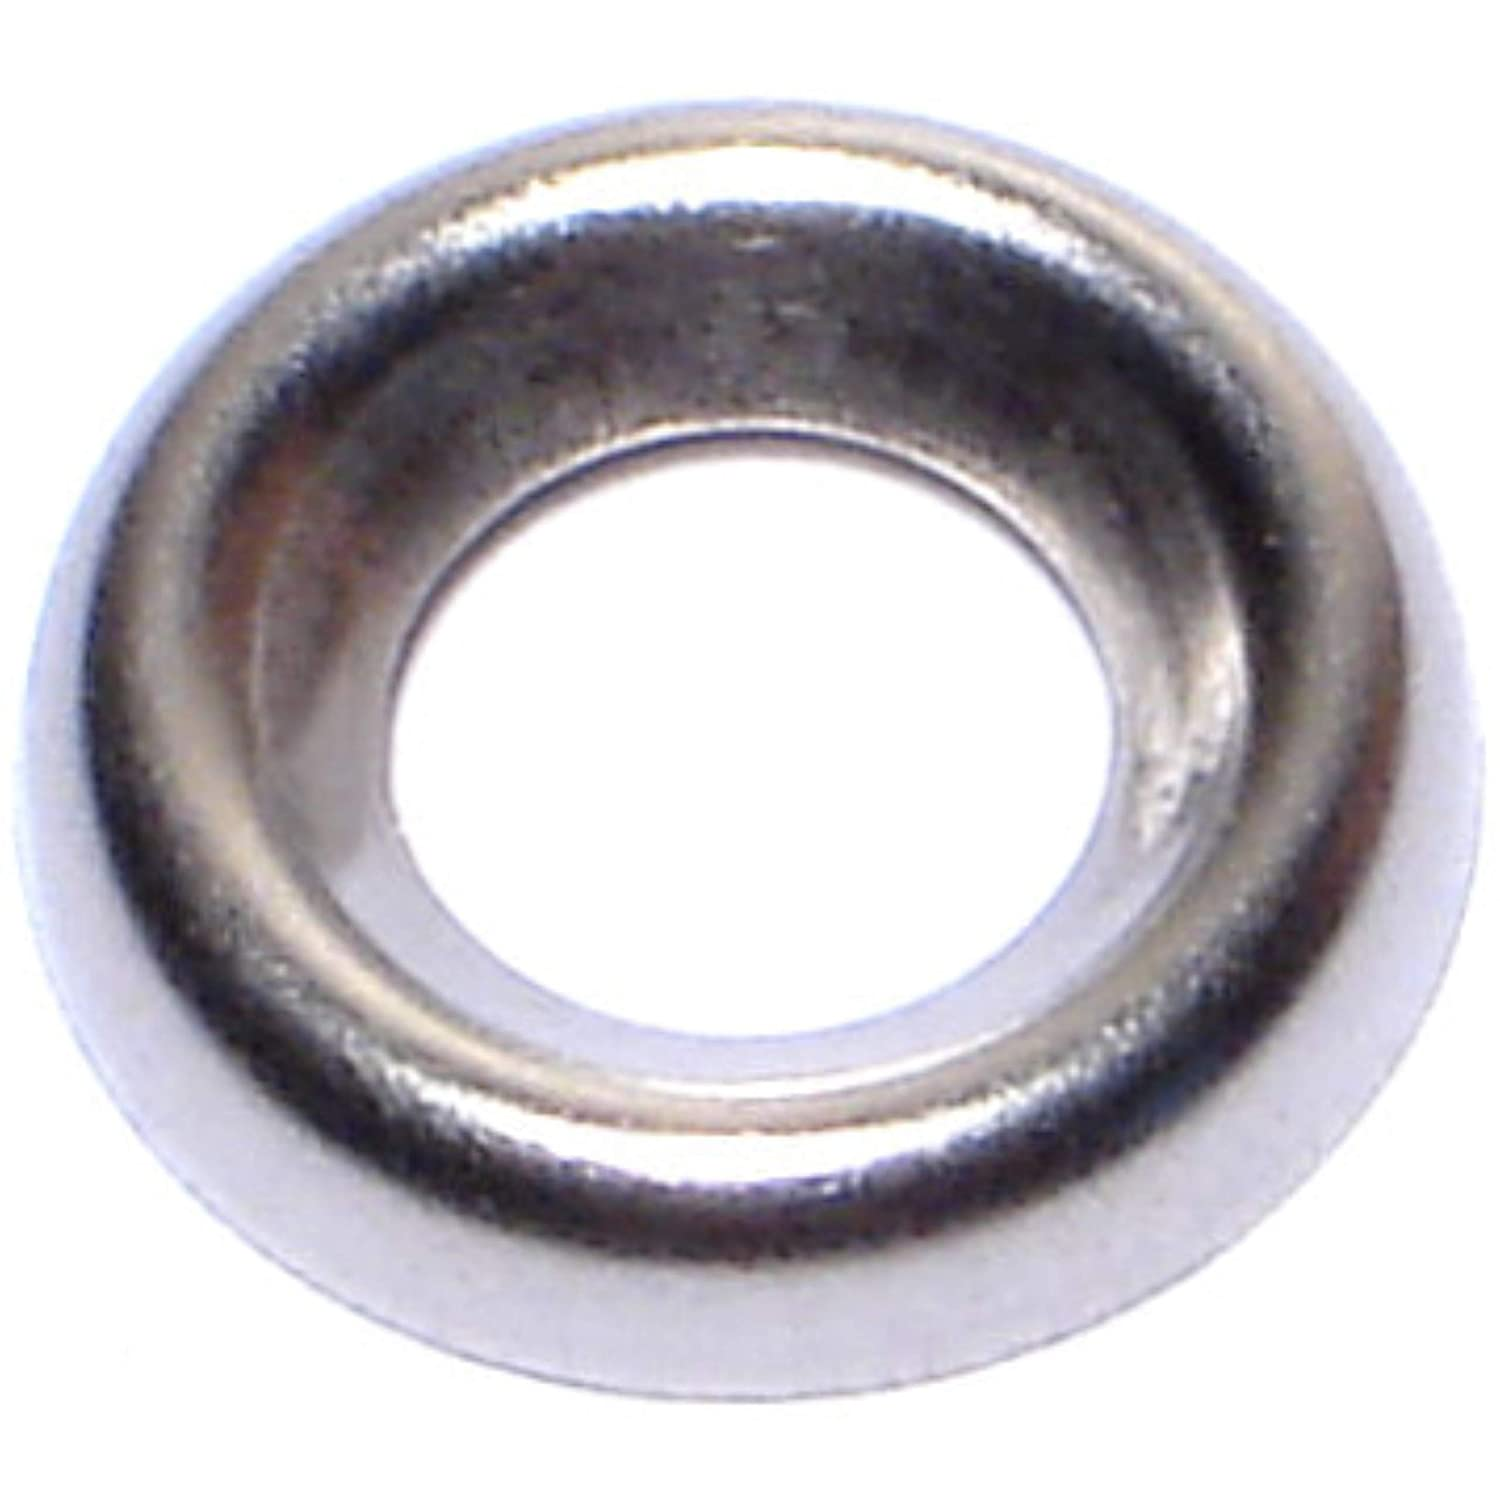 12 Piece-25 Hard-to-Find Fastener 014973181567 Finishing Washers